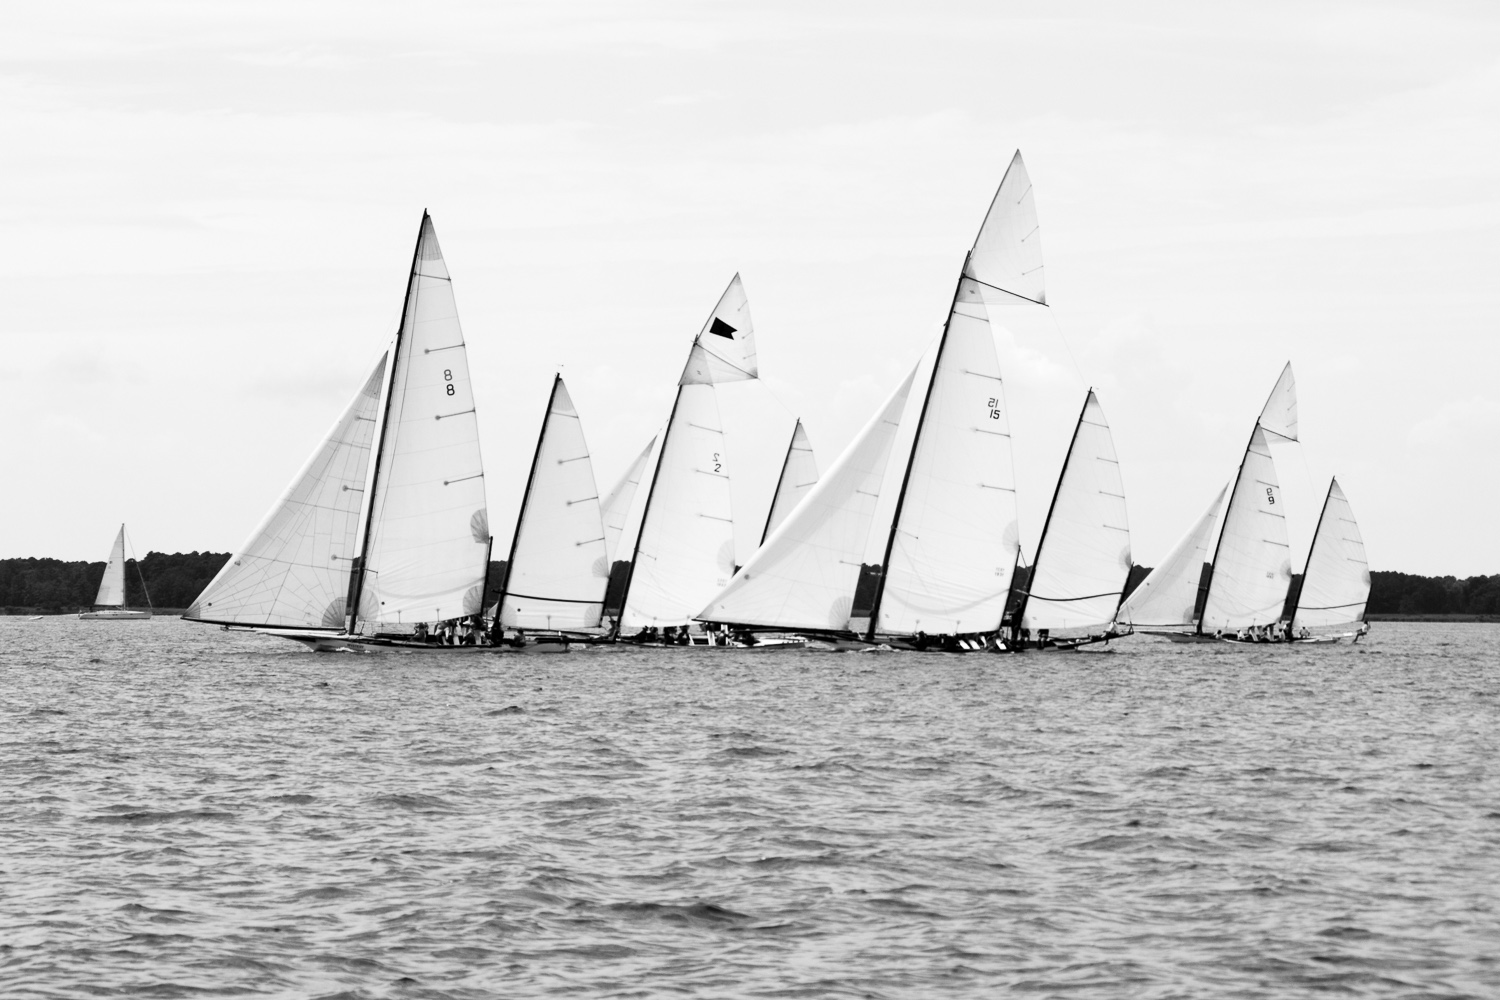 Log-Canoe-Race-at-Rock-Hall-Yacht-Club-July-2016-ss-10.jpg